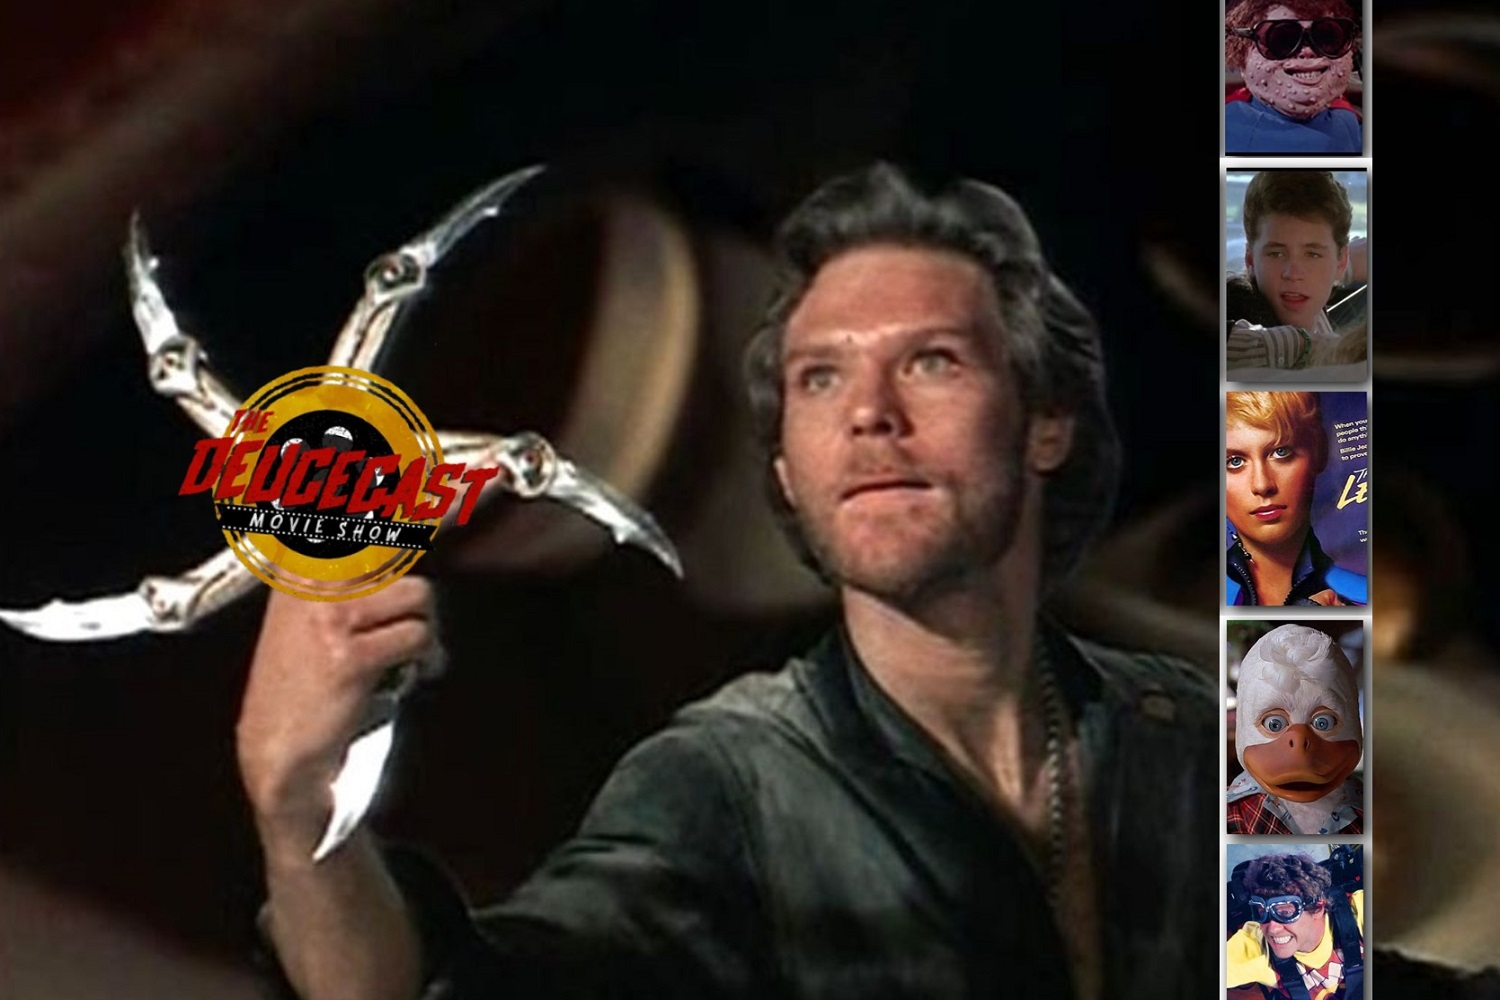 The Deucecast Movie Show #444: The Best of the Worst 1980s